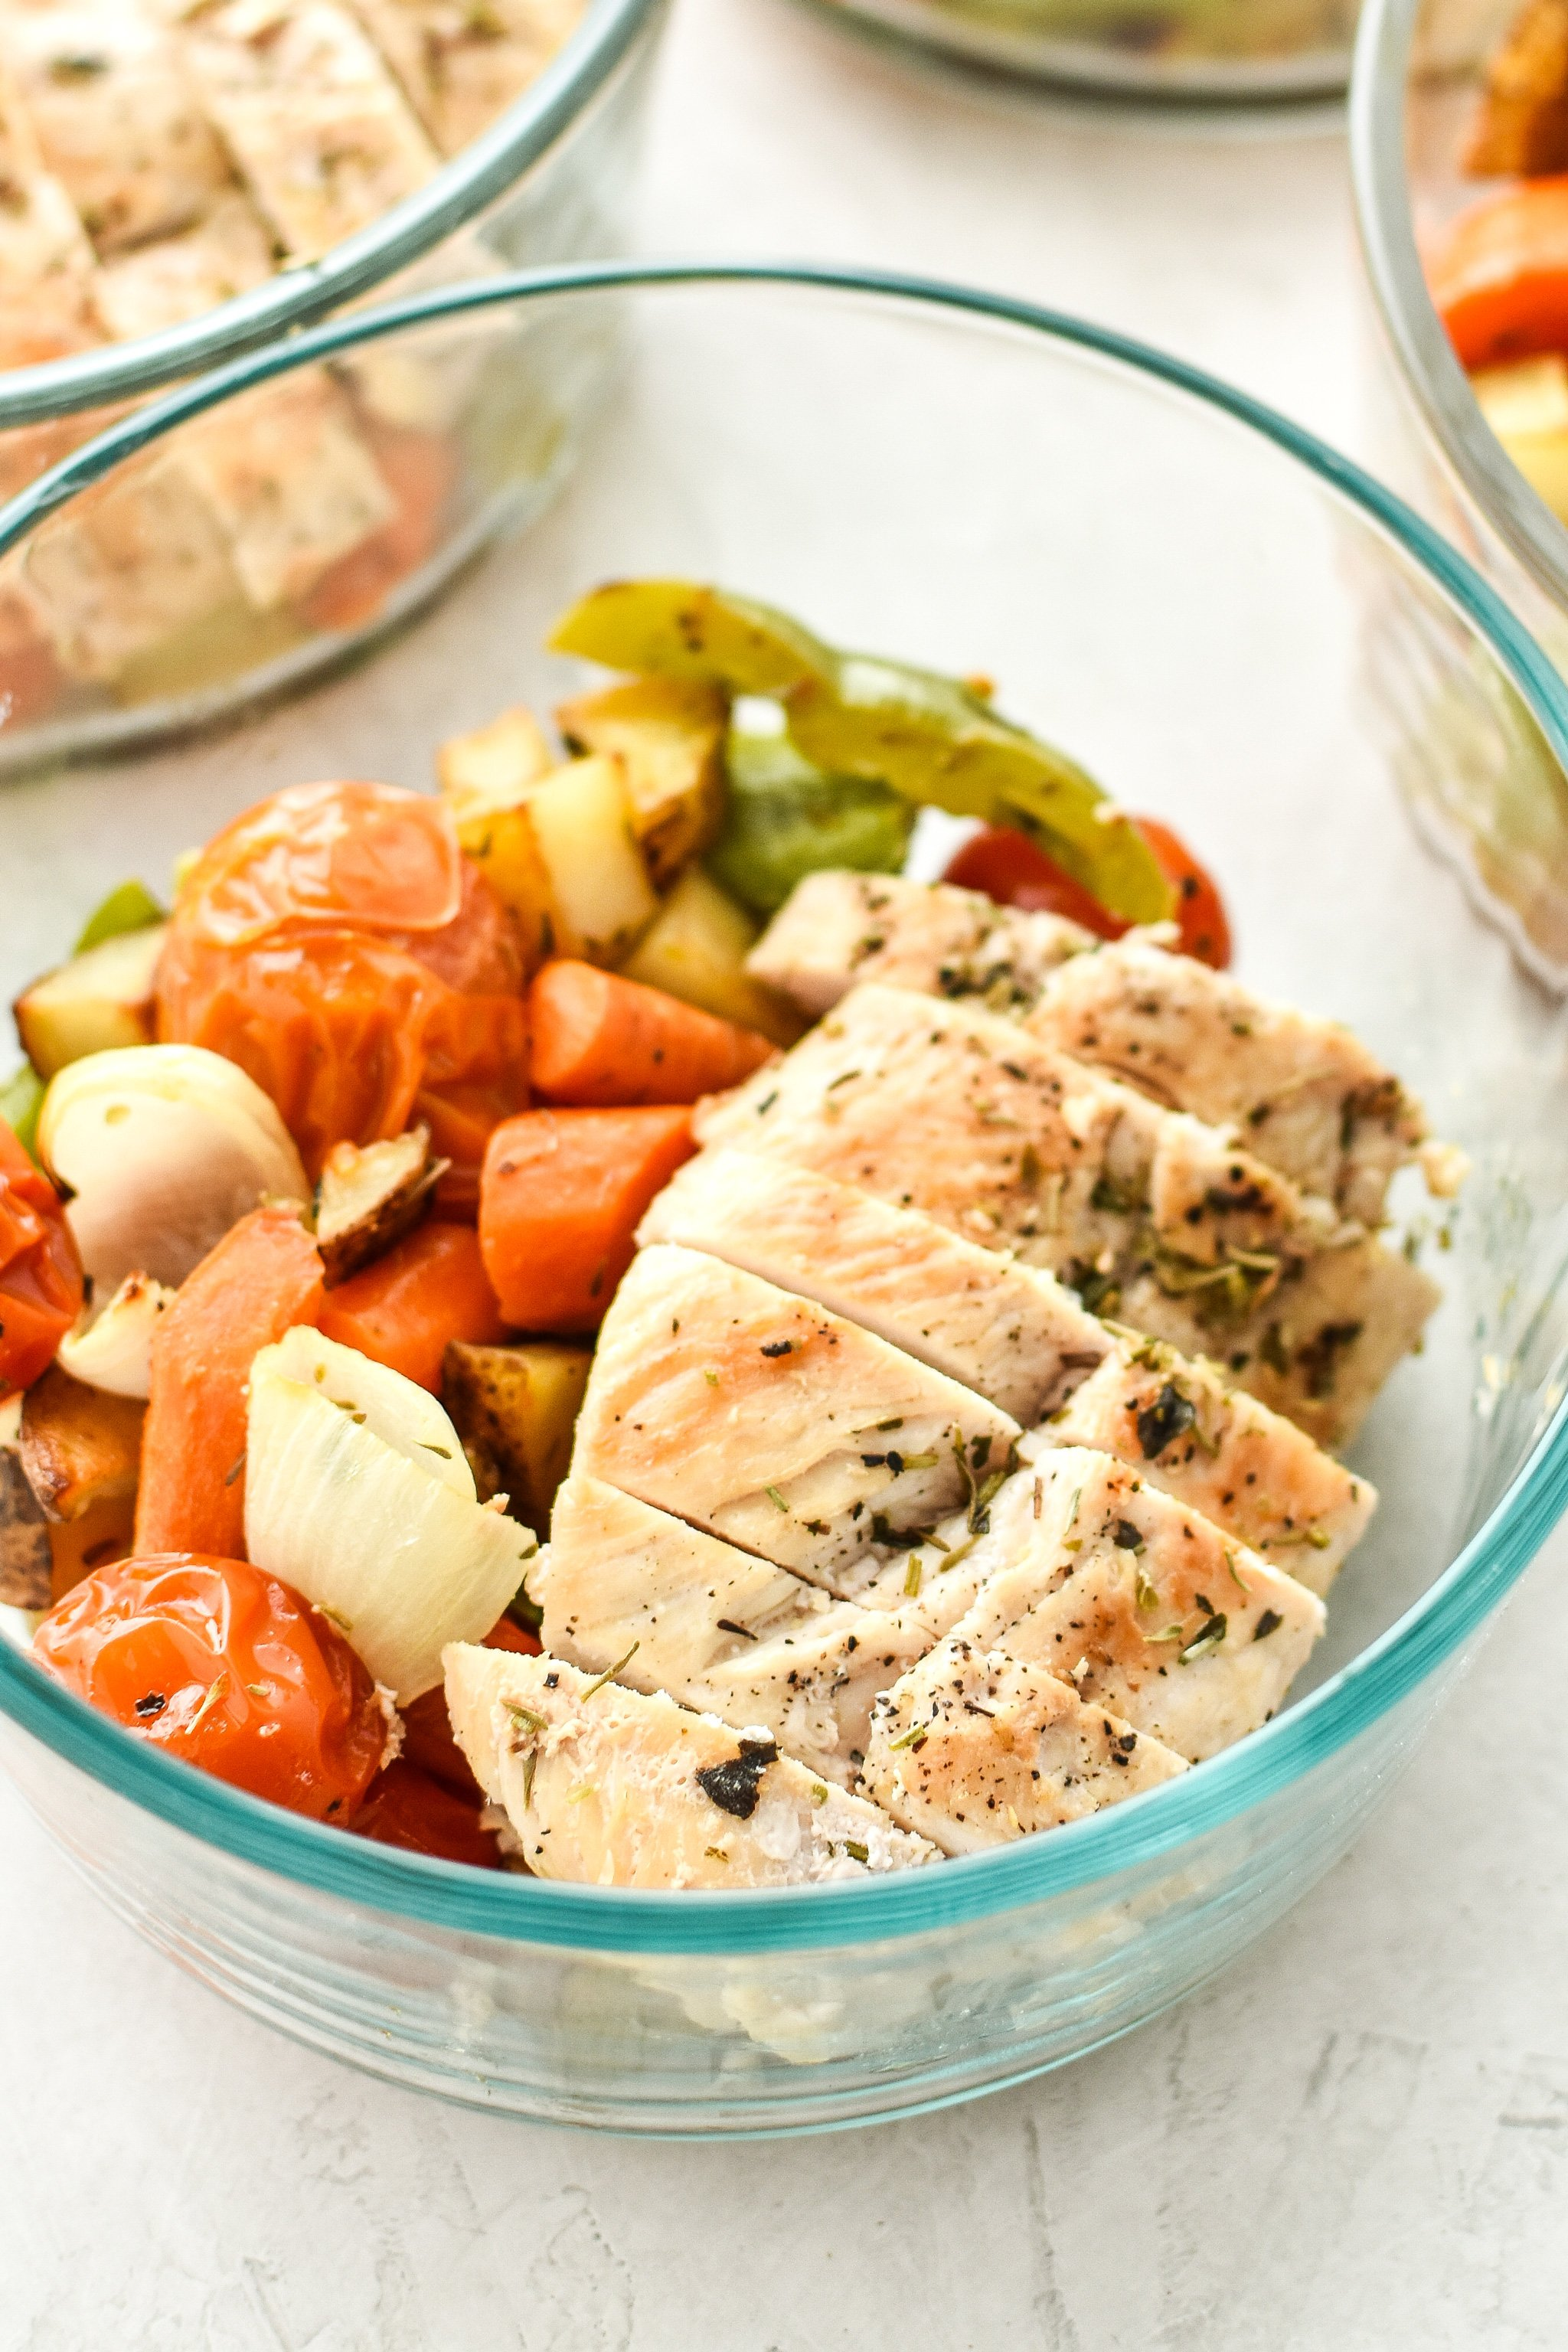 Simple, healthy, Meal Prep Italian Seasoned Chicken with Roasted Imperfect Vegetables including potatoes, cherry tomatoes, onions, and bell peppers!